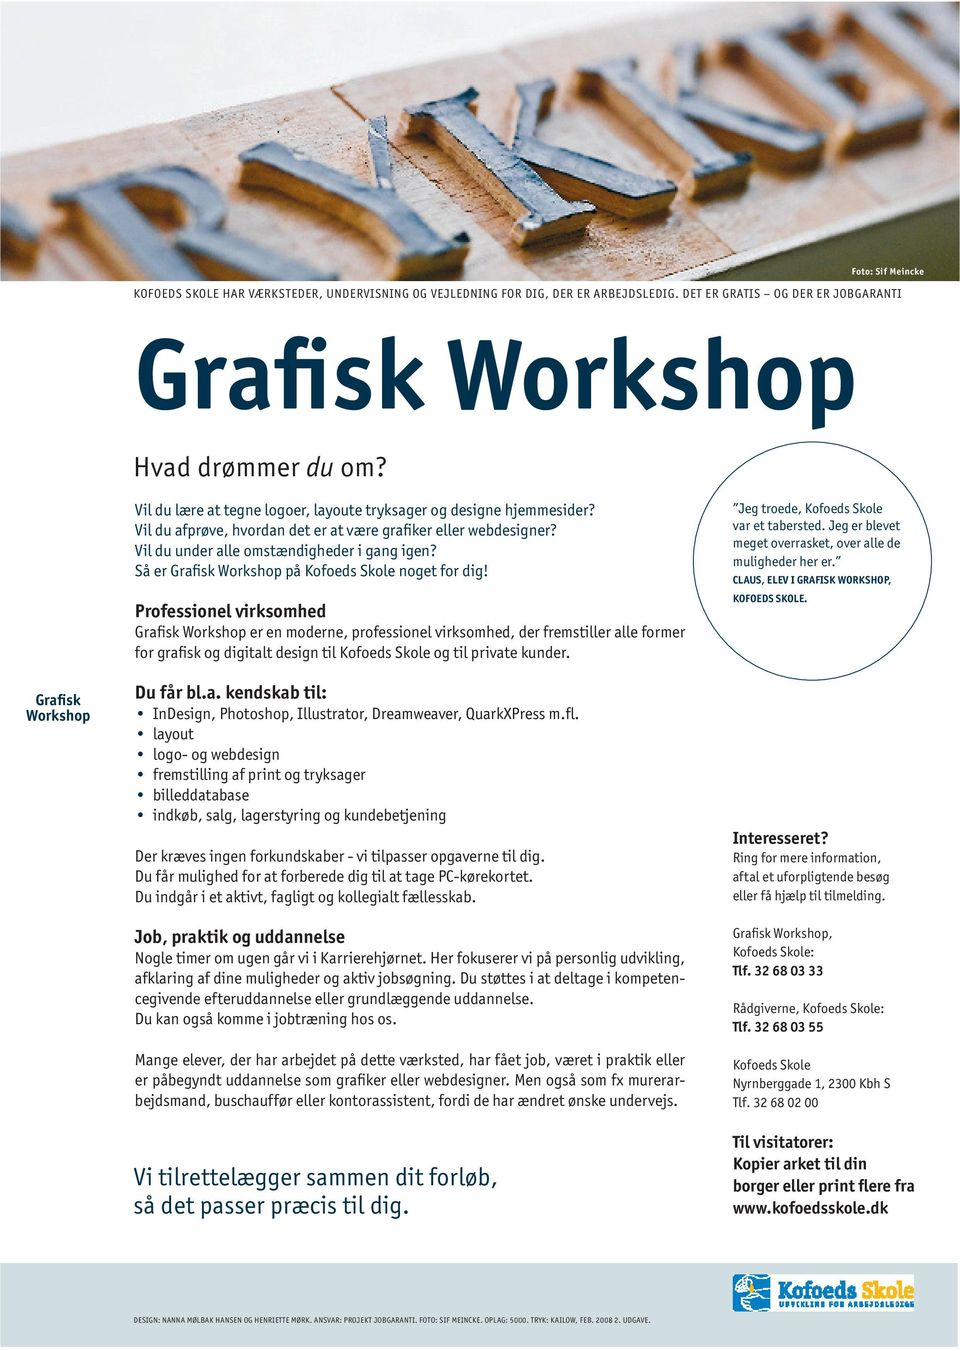 Professionel virksomhed Grafisk Workshop er en moderne, professionel virksomhed, der fremstiller alle former for grafisk og digitalt design til og til private kunder. Du får bl.a. kendskab til: InDesign, Photoshop, Illustrator, Dreamweaver, QuarkXPress m.